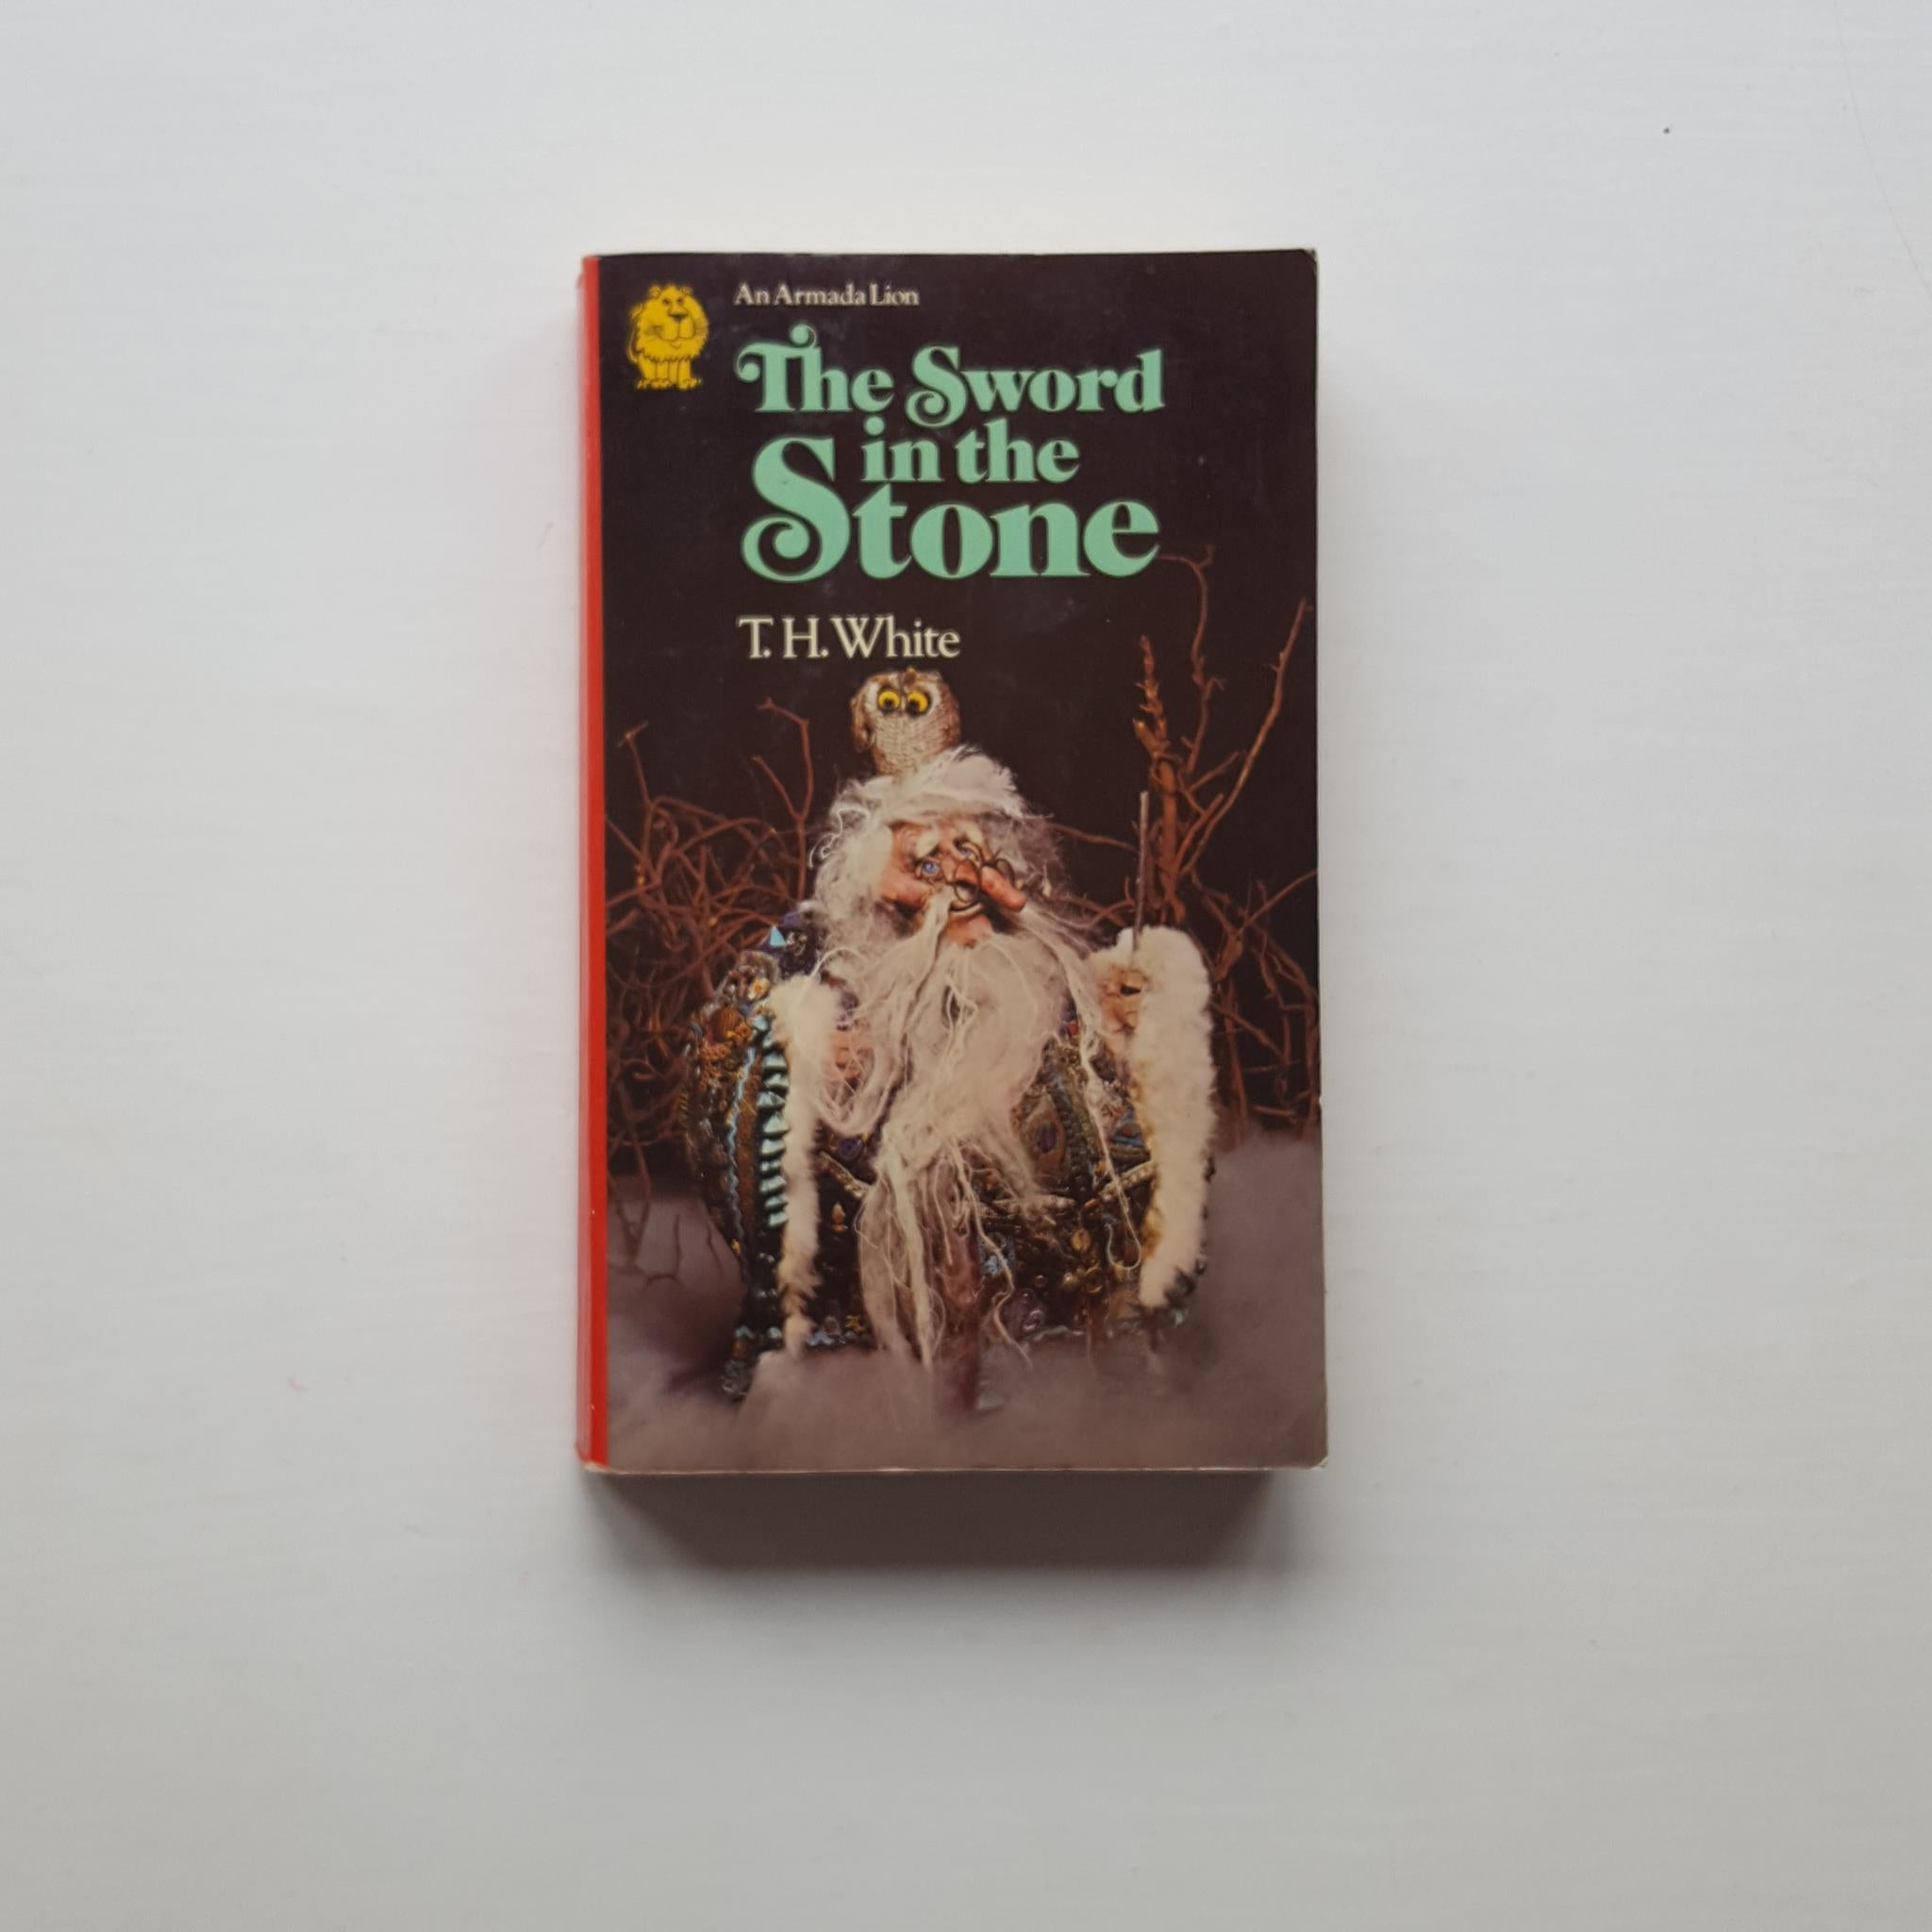 The Sword in the Stone by T.H.White